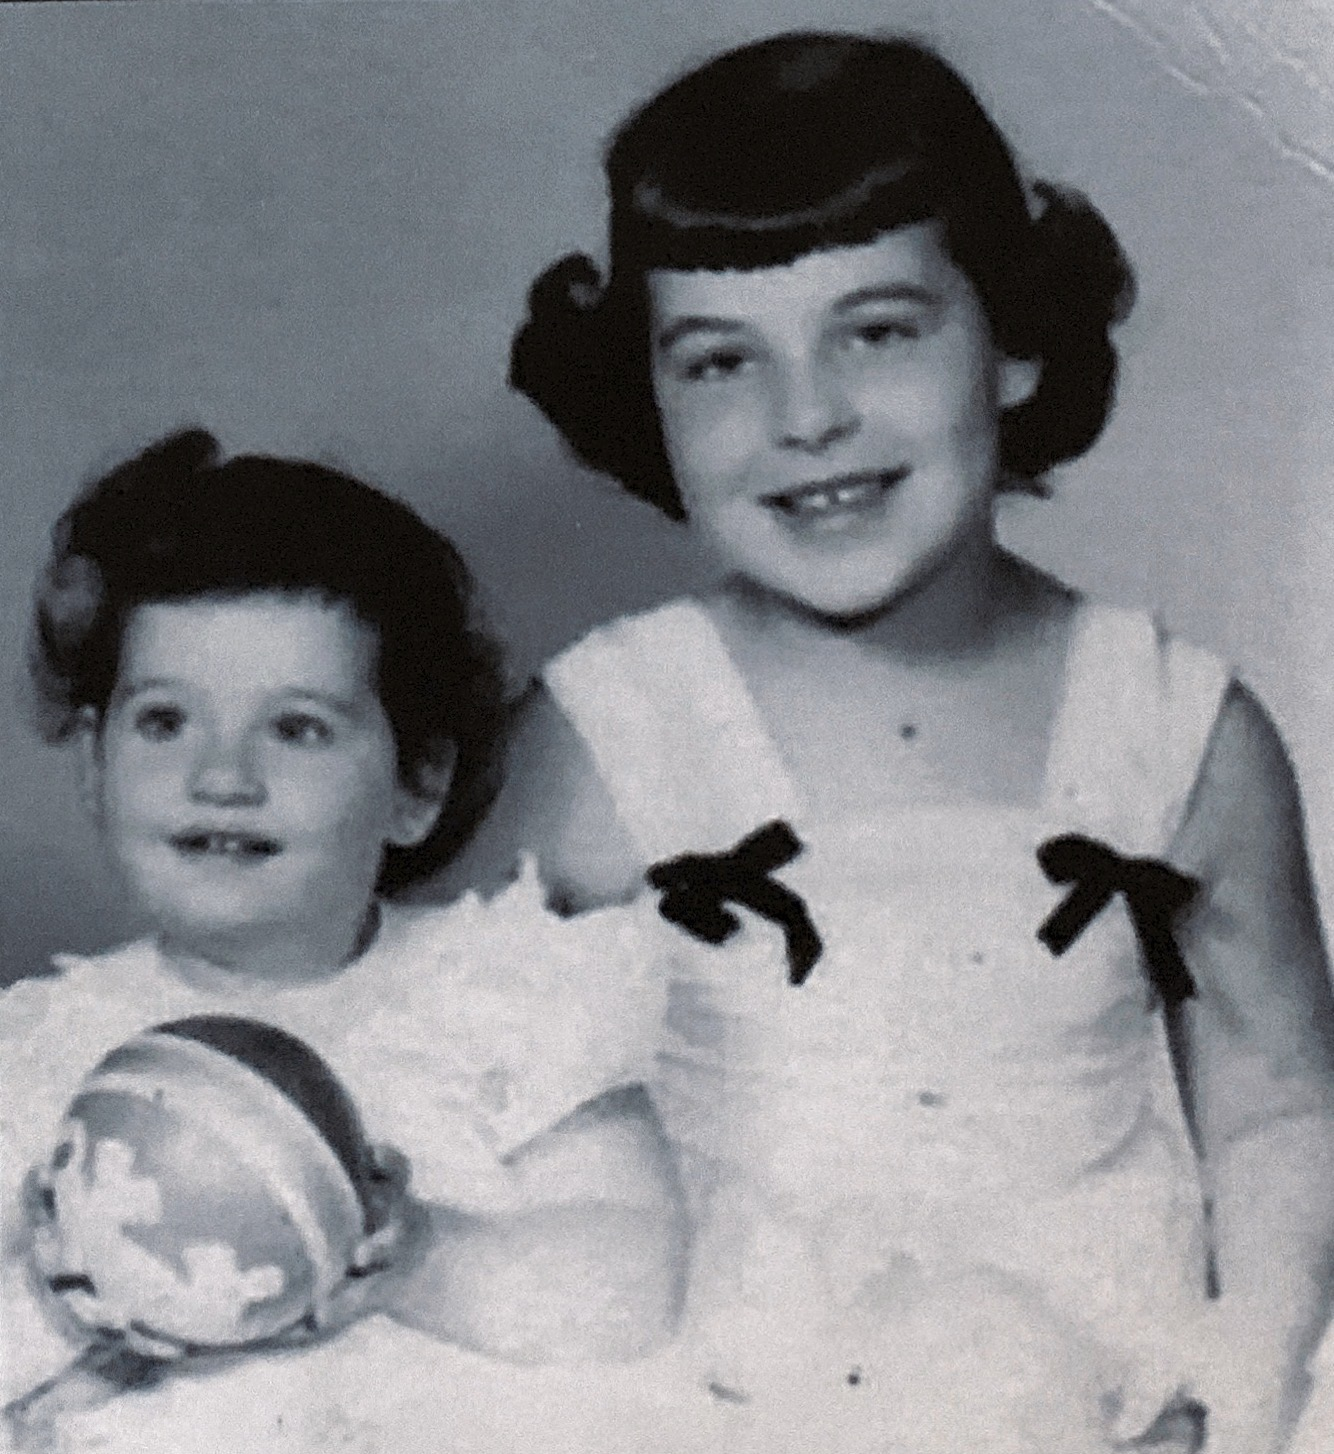 Linda and Donna just before the accident, 1952. The last picture of them together